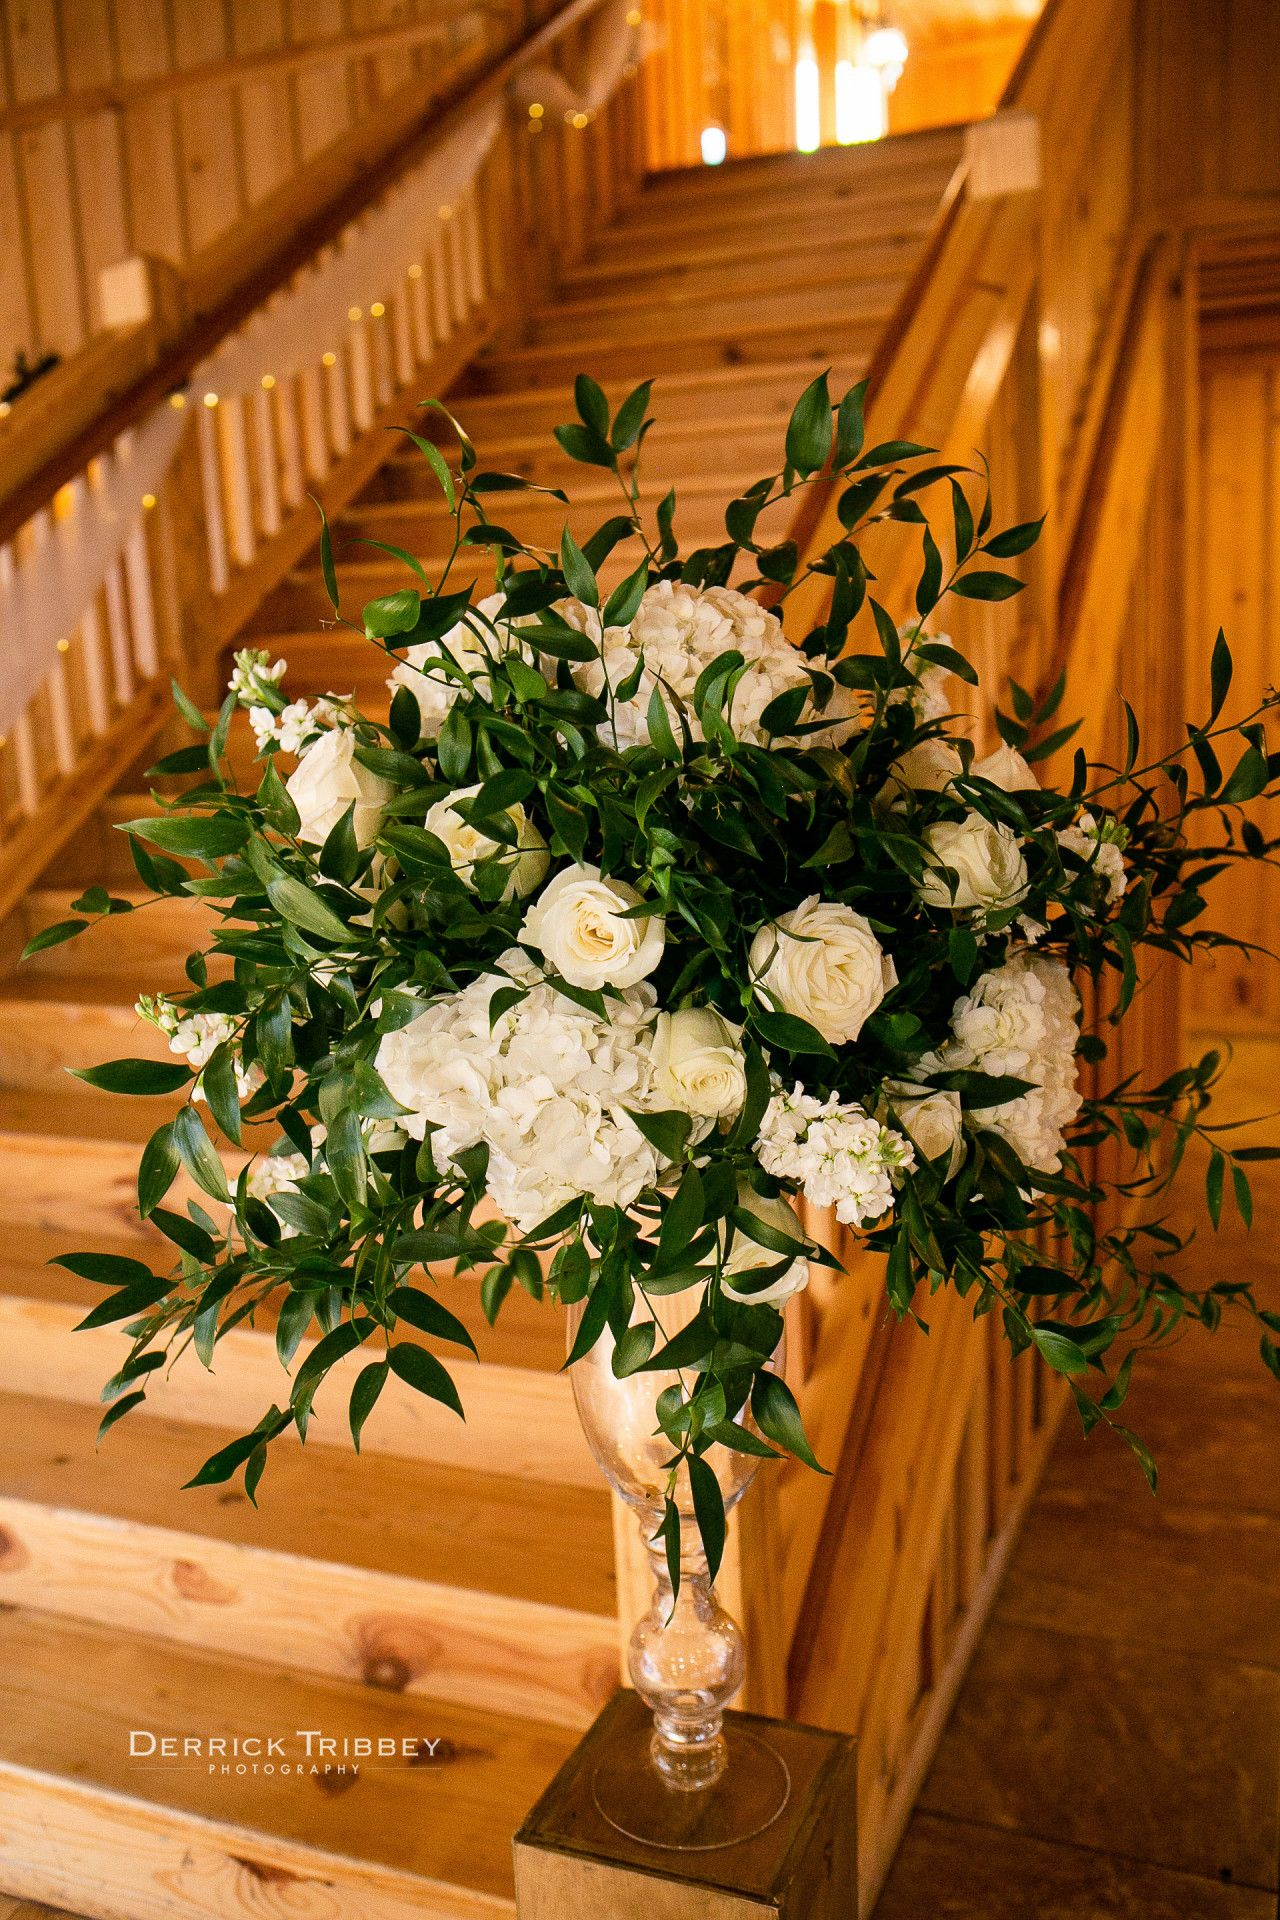 Elegant Wedding Venue Staircase Floral Arrangement White Wedding Reception Decor Weddin Wedding Decor Elegant Fun Wedding Decor White Floral Arrangements